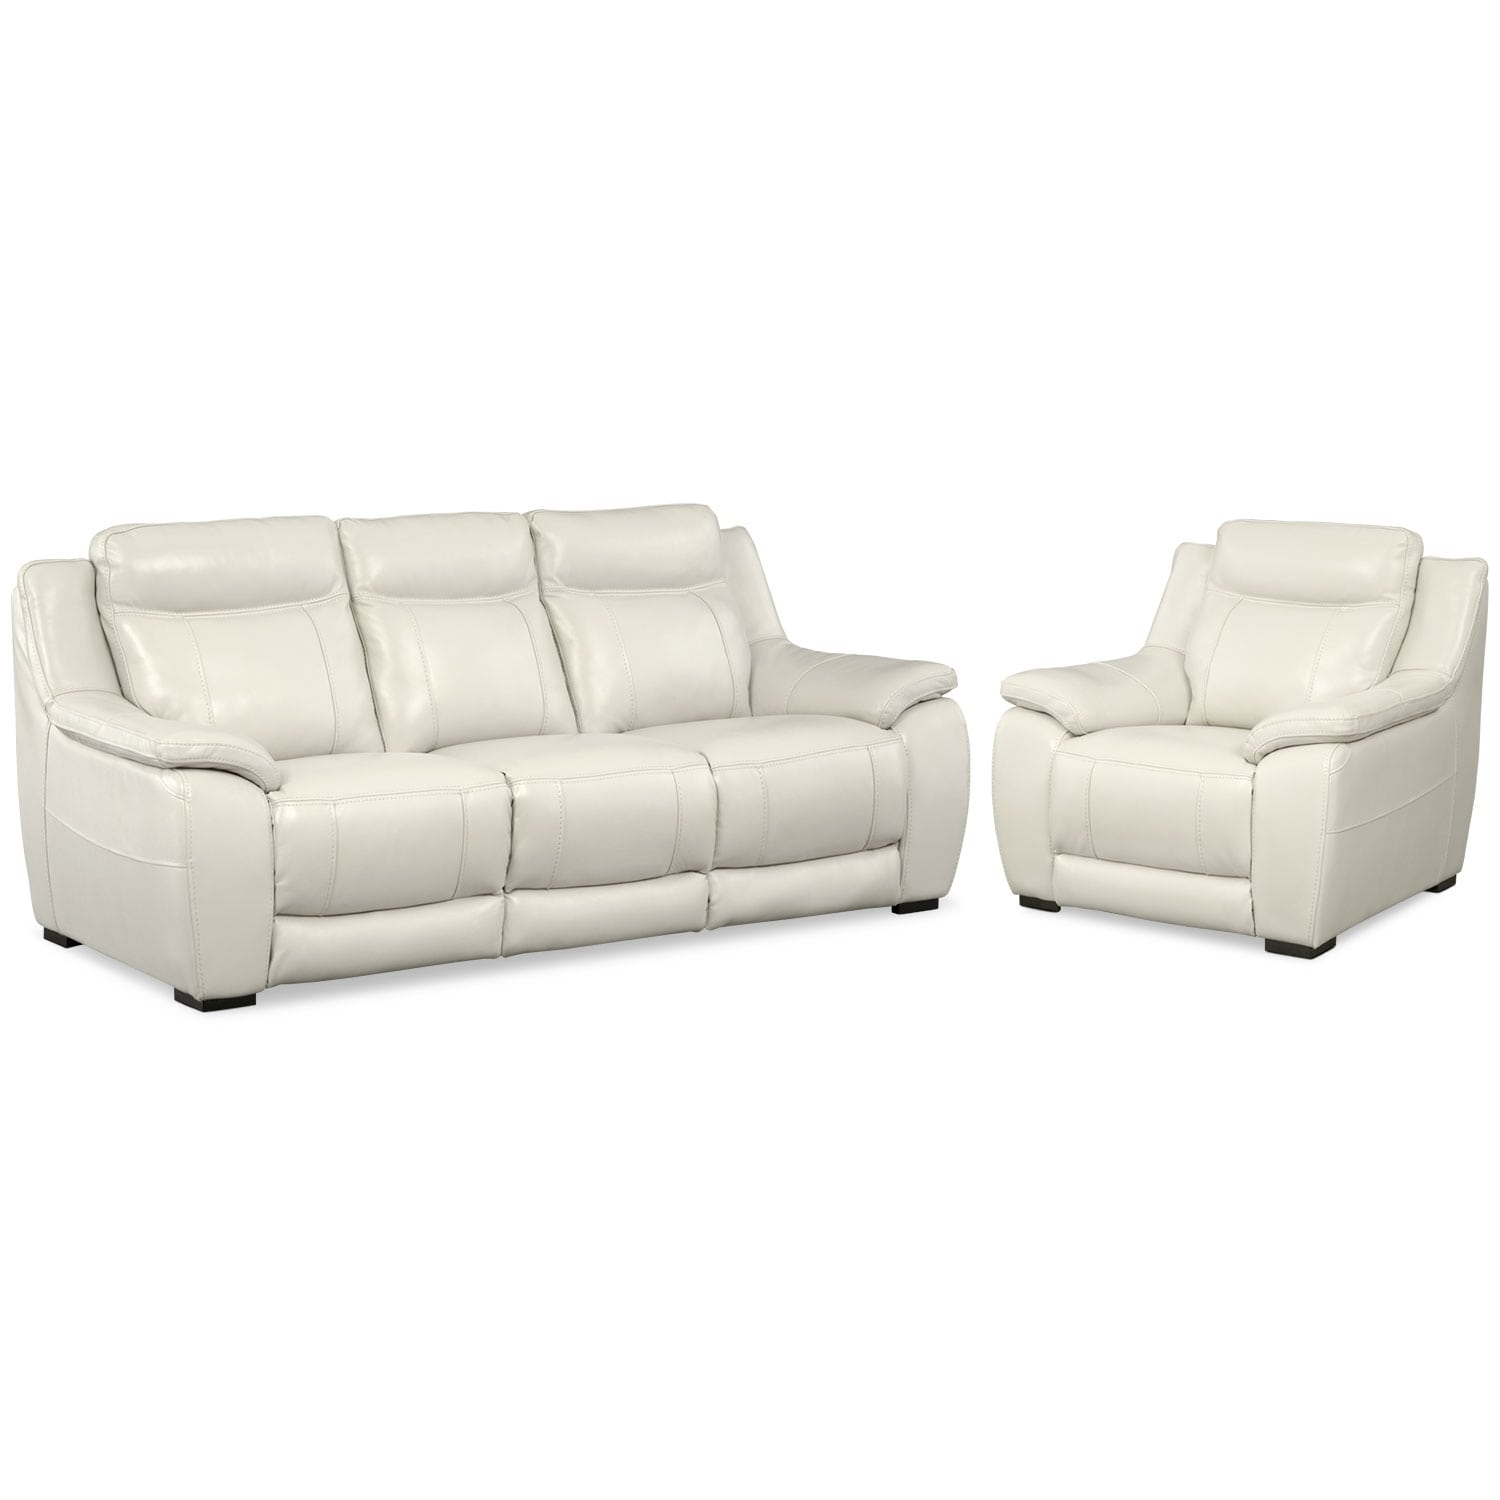 $1,799.98 Lido Sofa And Chair Set   Ivory By One80